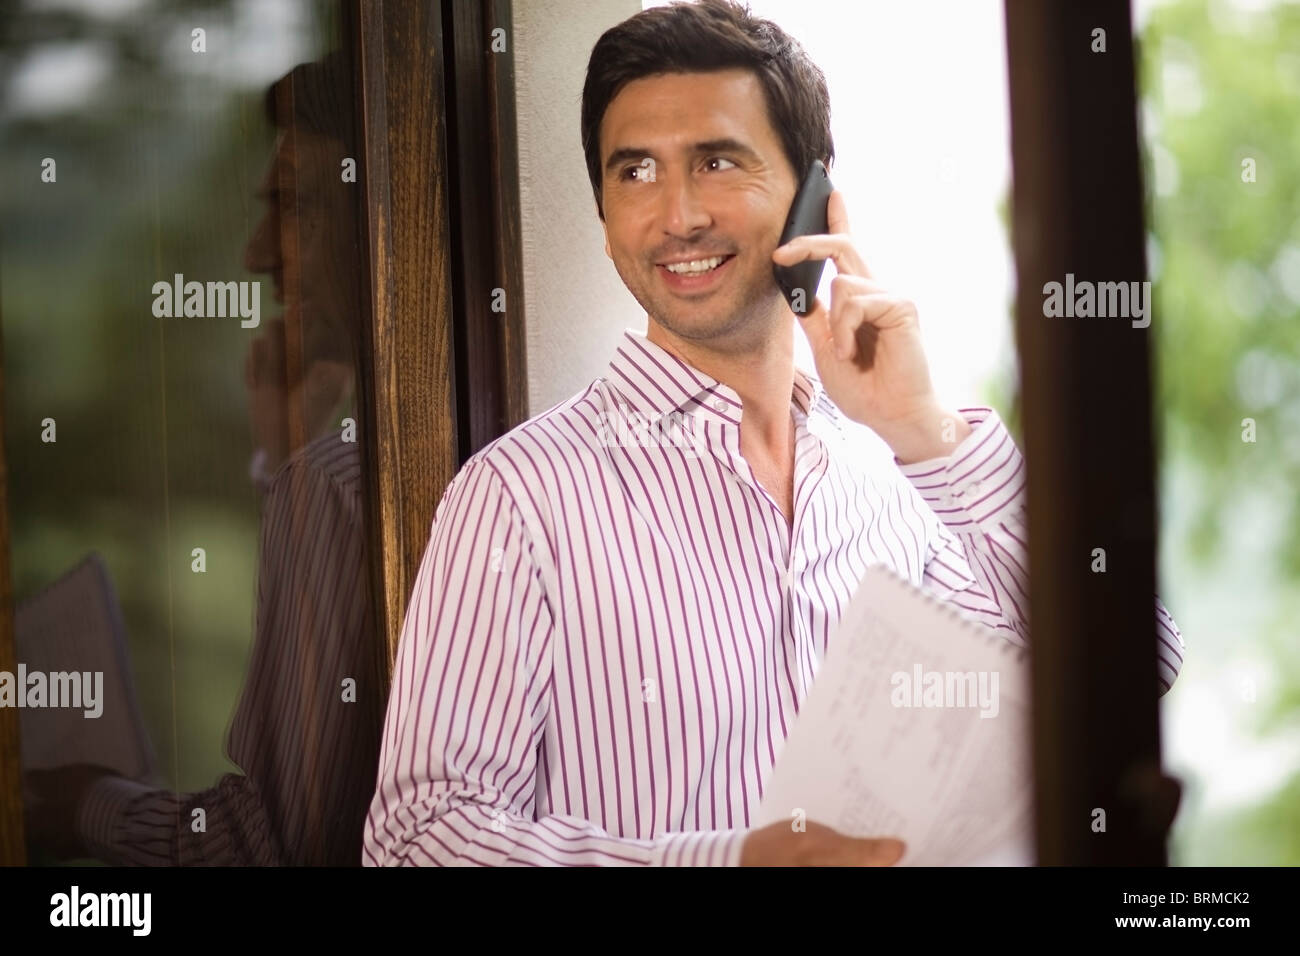 Man doing a telephone call - Stock Image